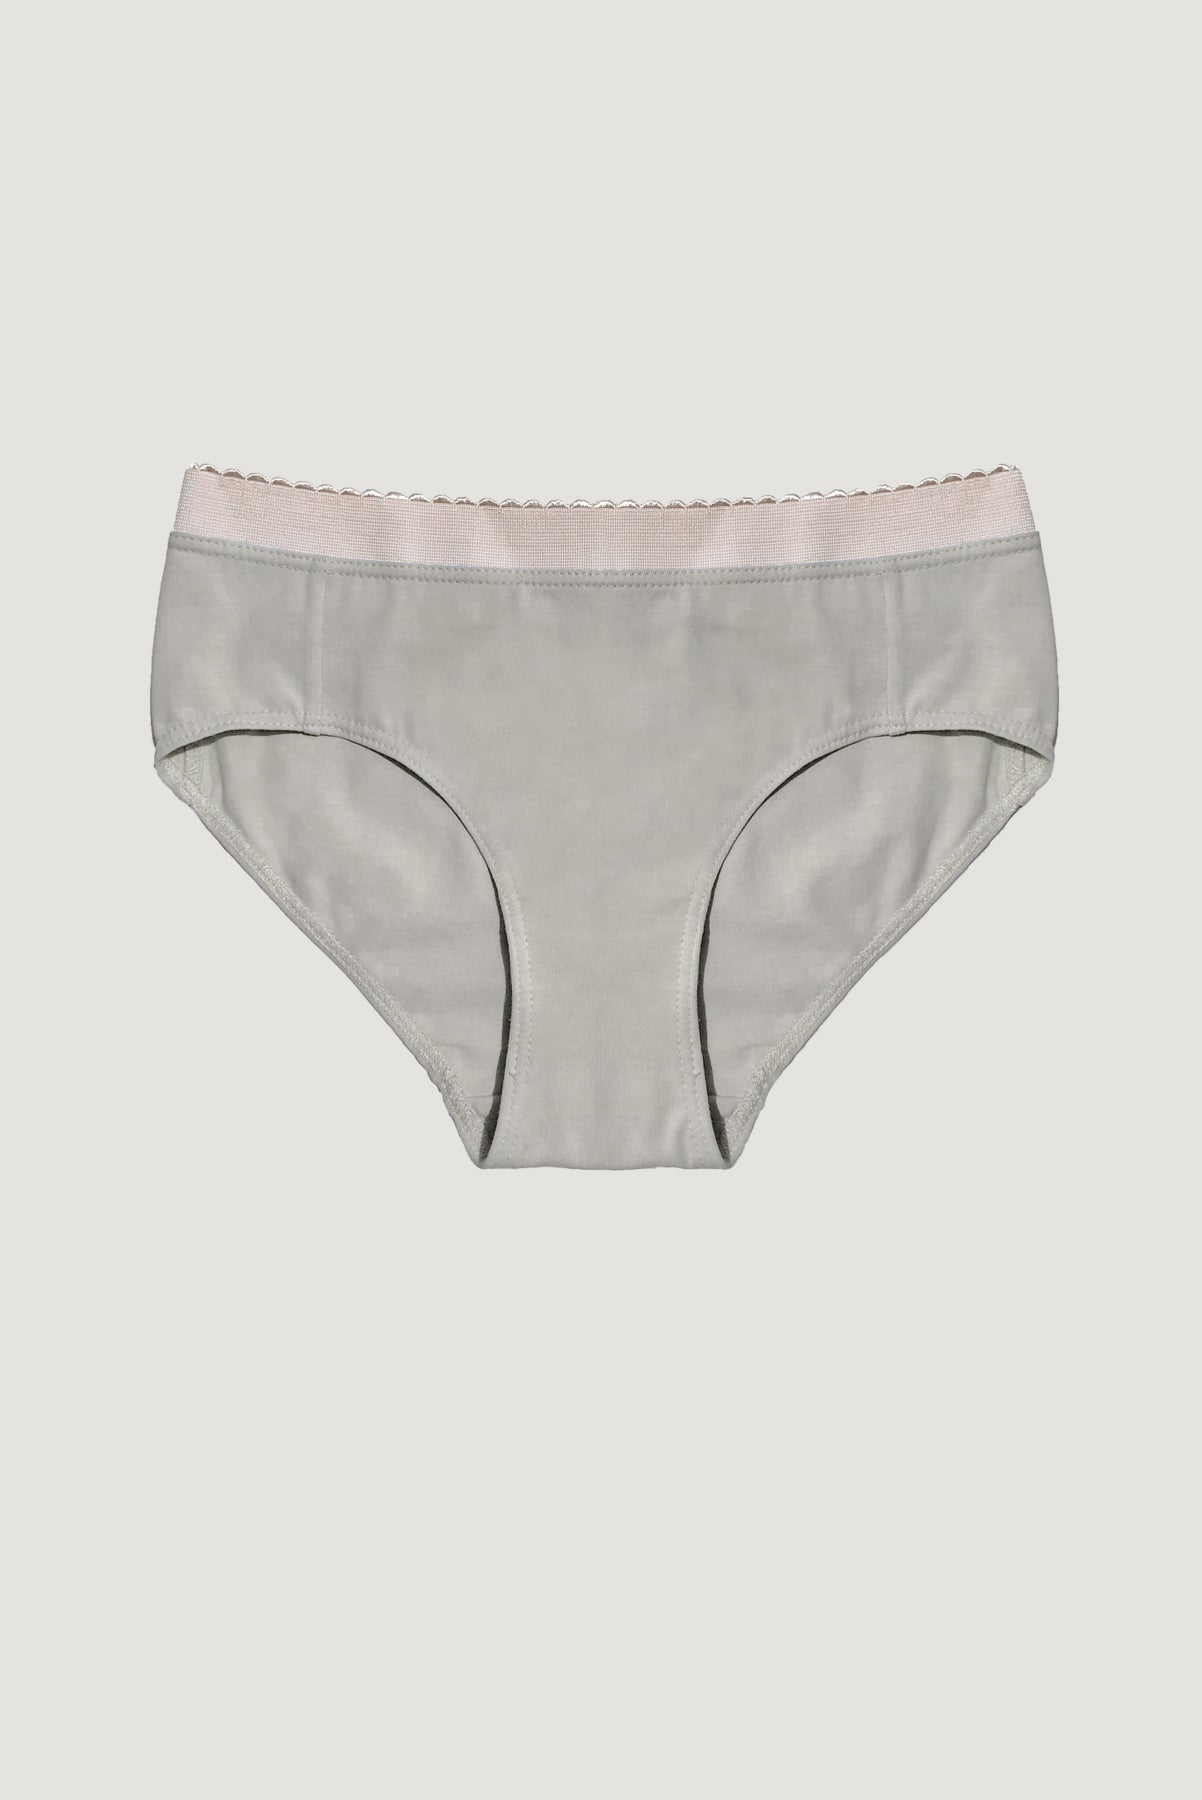 Scallop Brief - Nutmeg